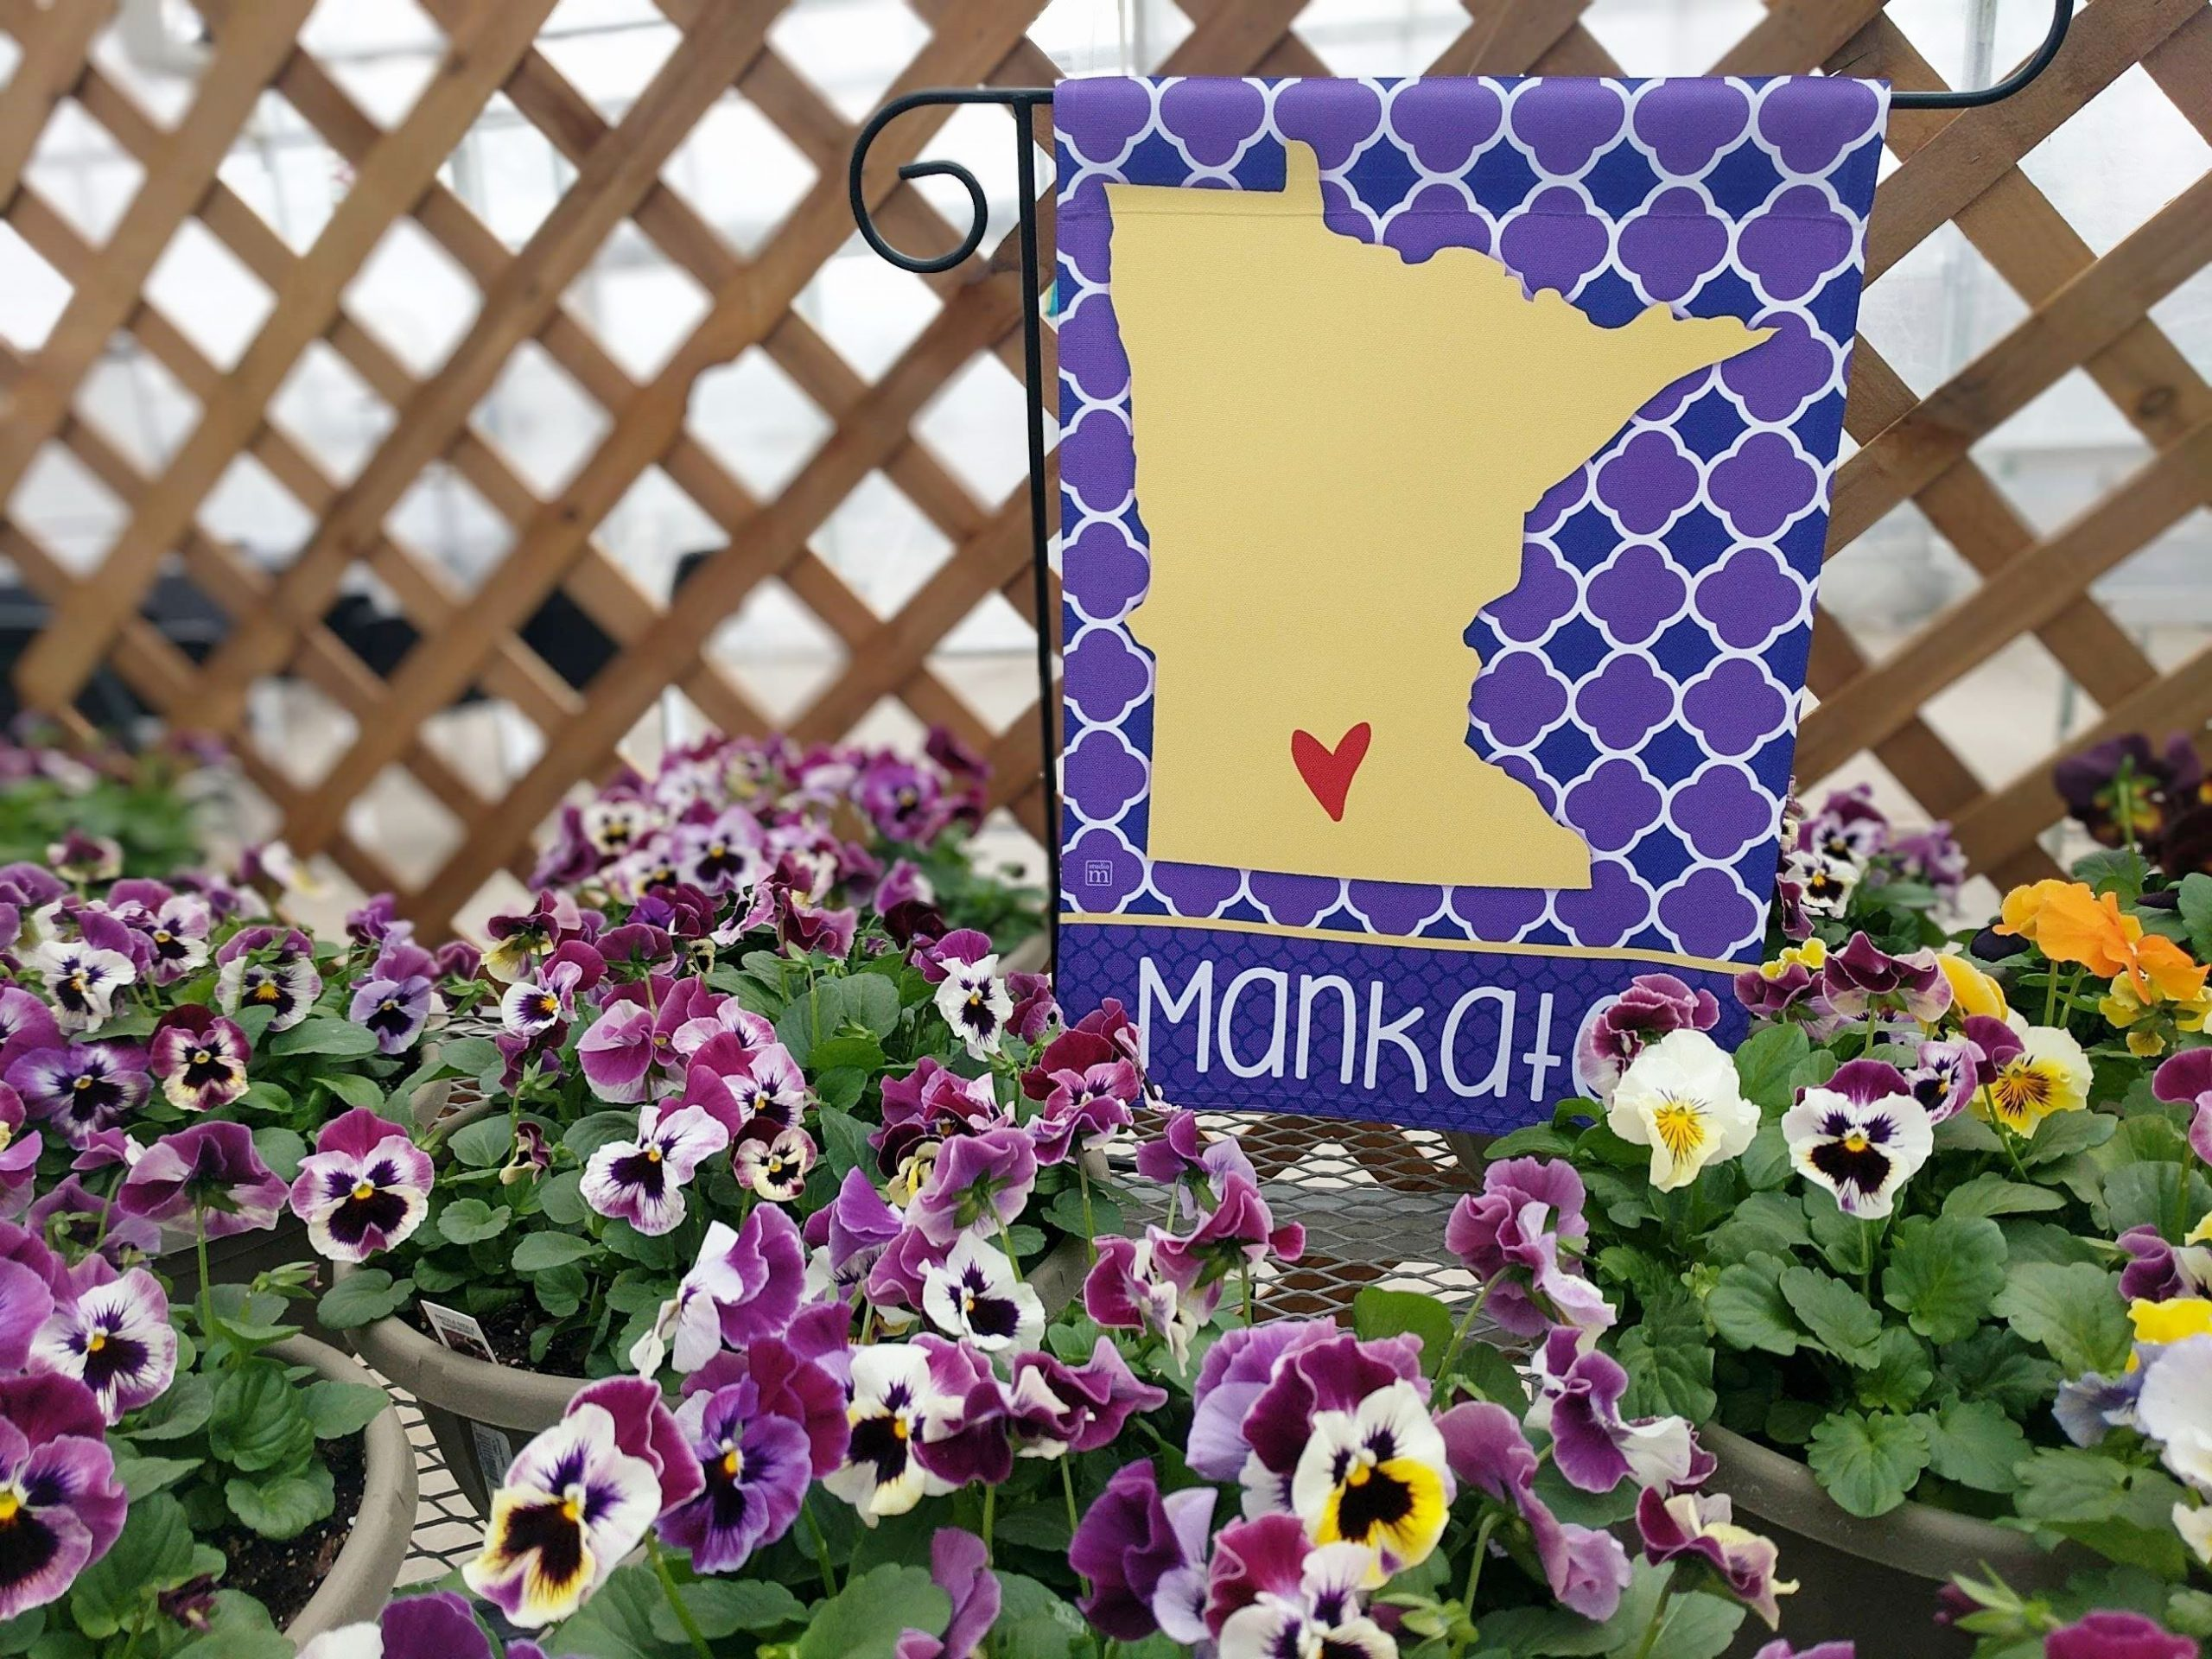 purple and yellow pansies in front of a purple and yellow yard flag with minnesota on it and a heart where mankato is.